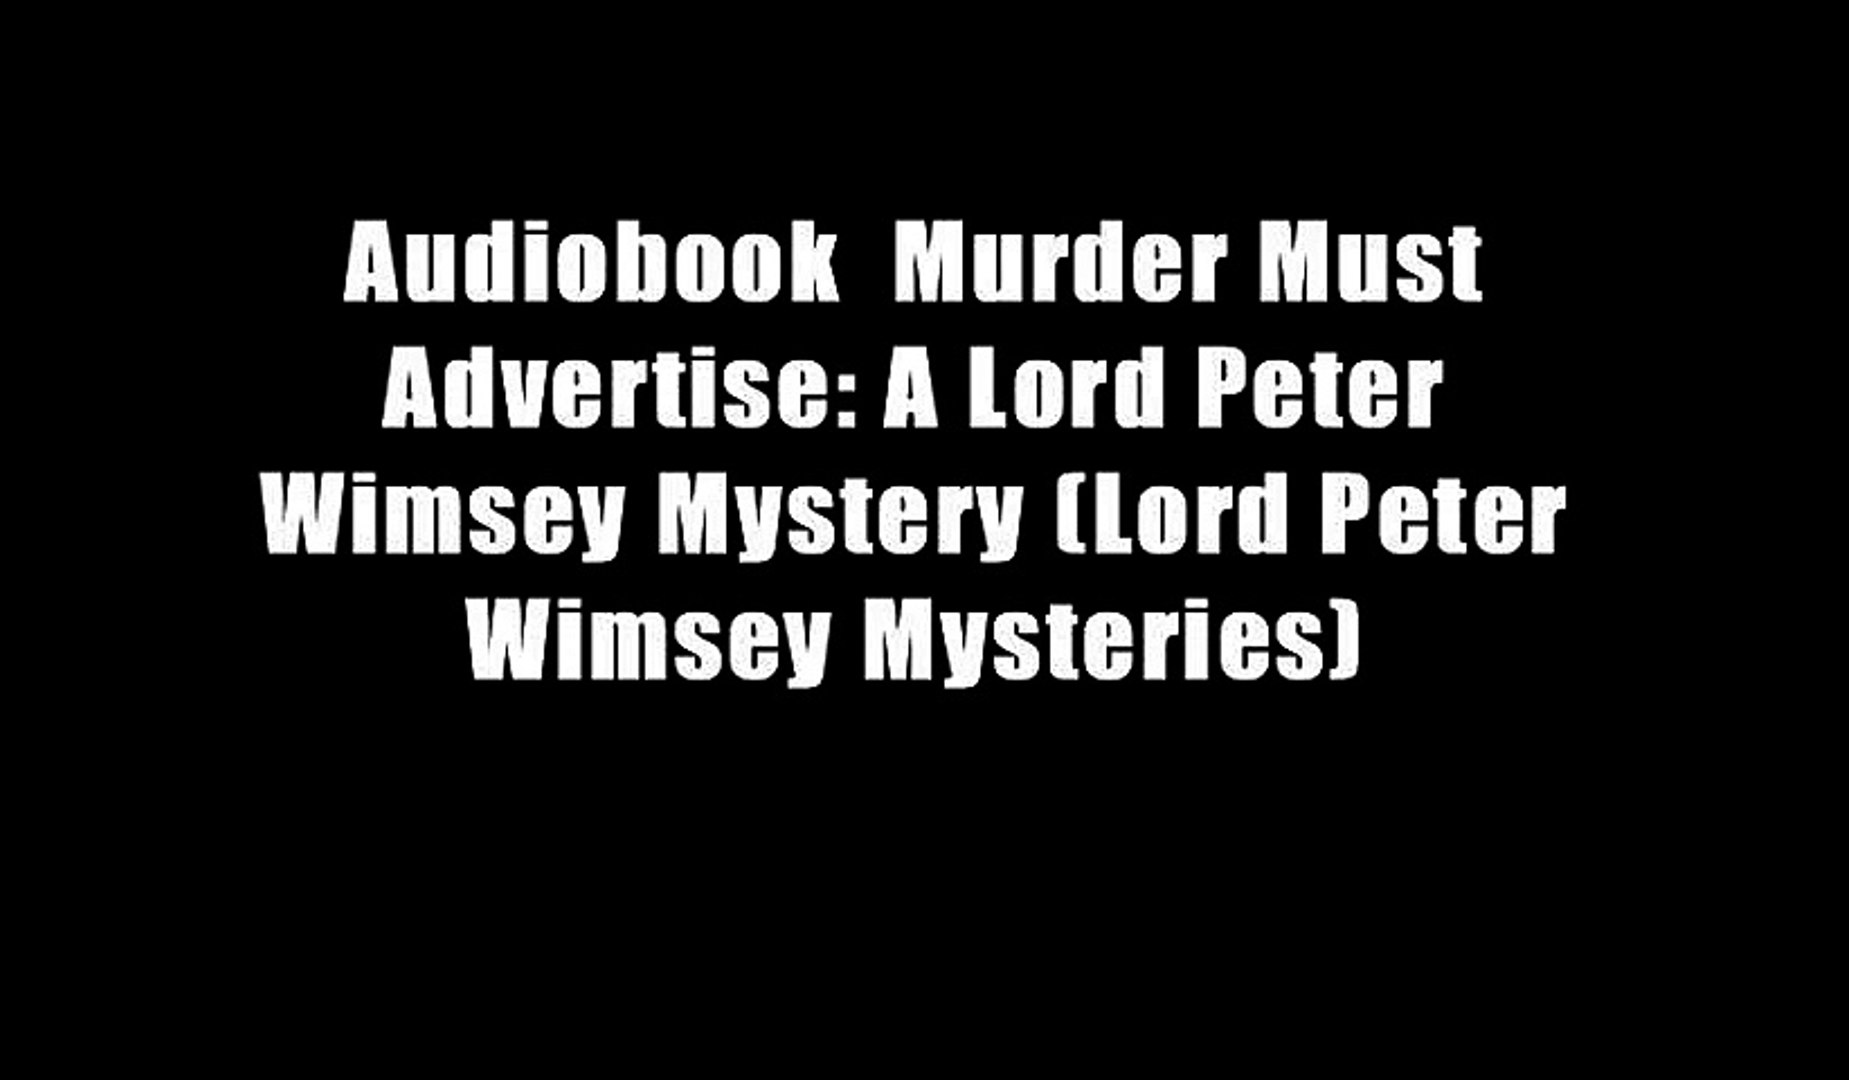 Audiobook  Murder Must Advertise: A Lord Peter Wimsey Mystery (Lord Peter Wimsey Mysteries)